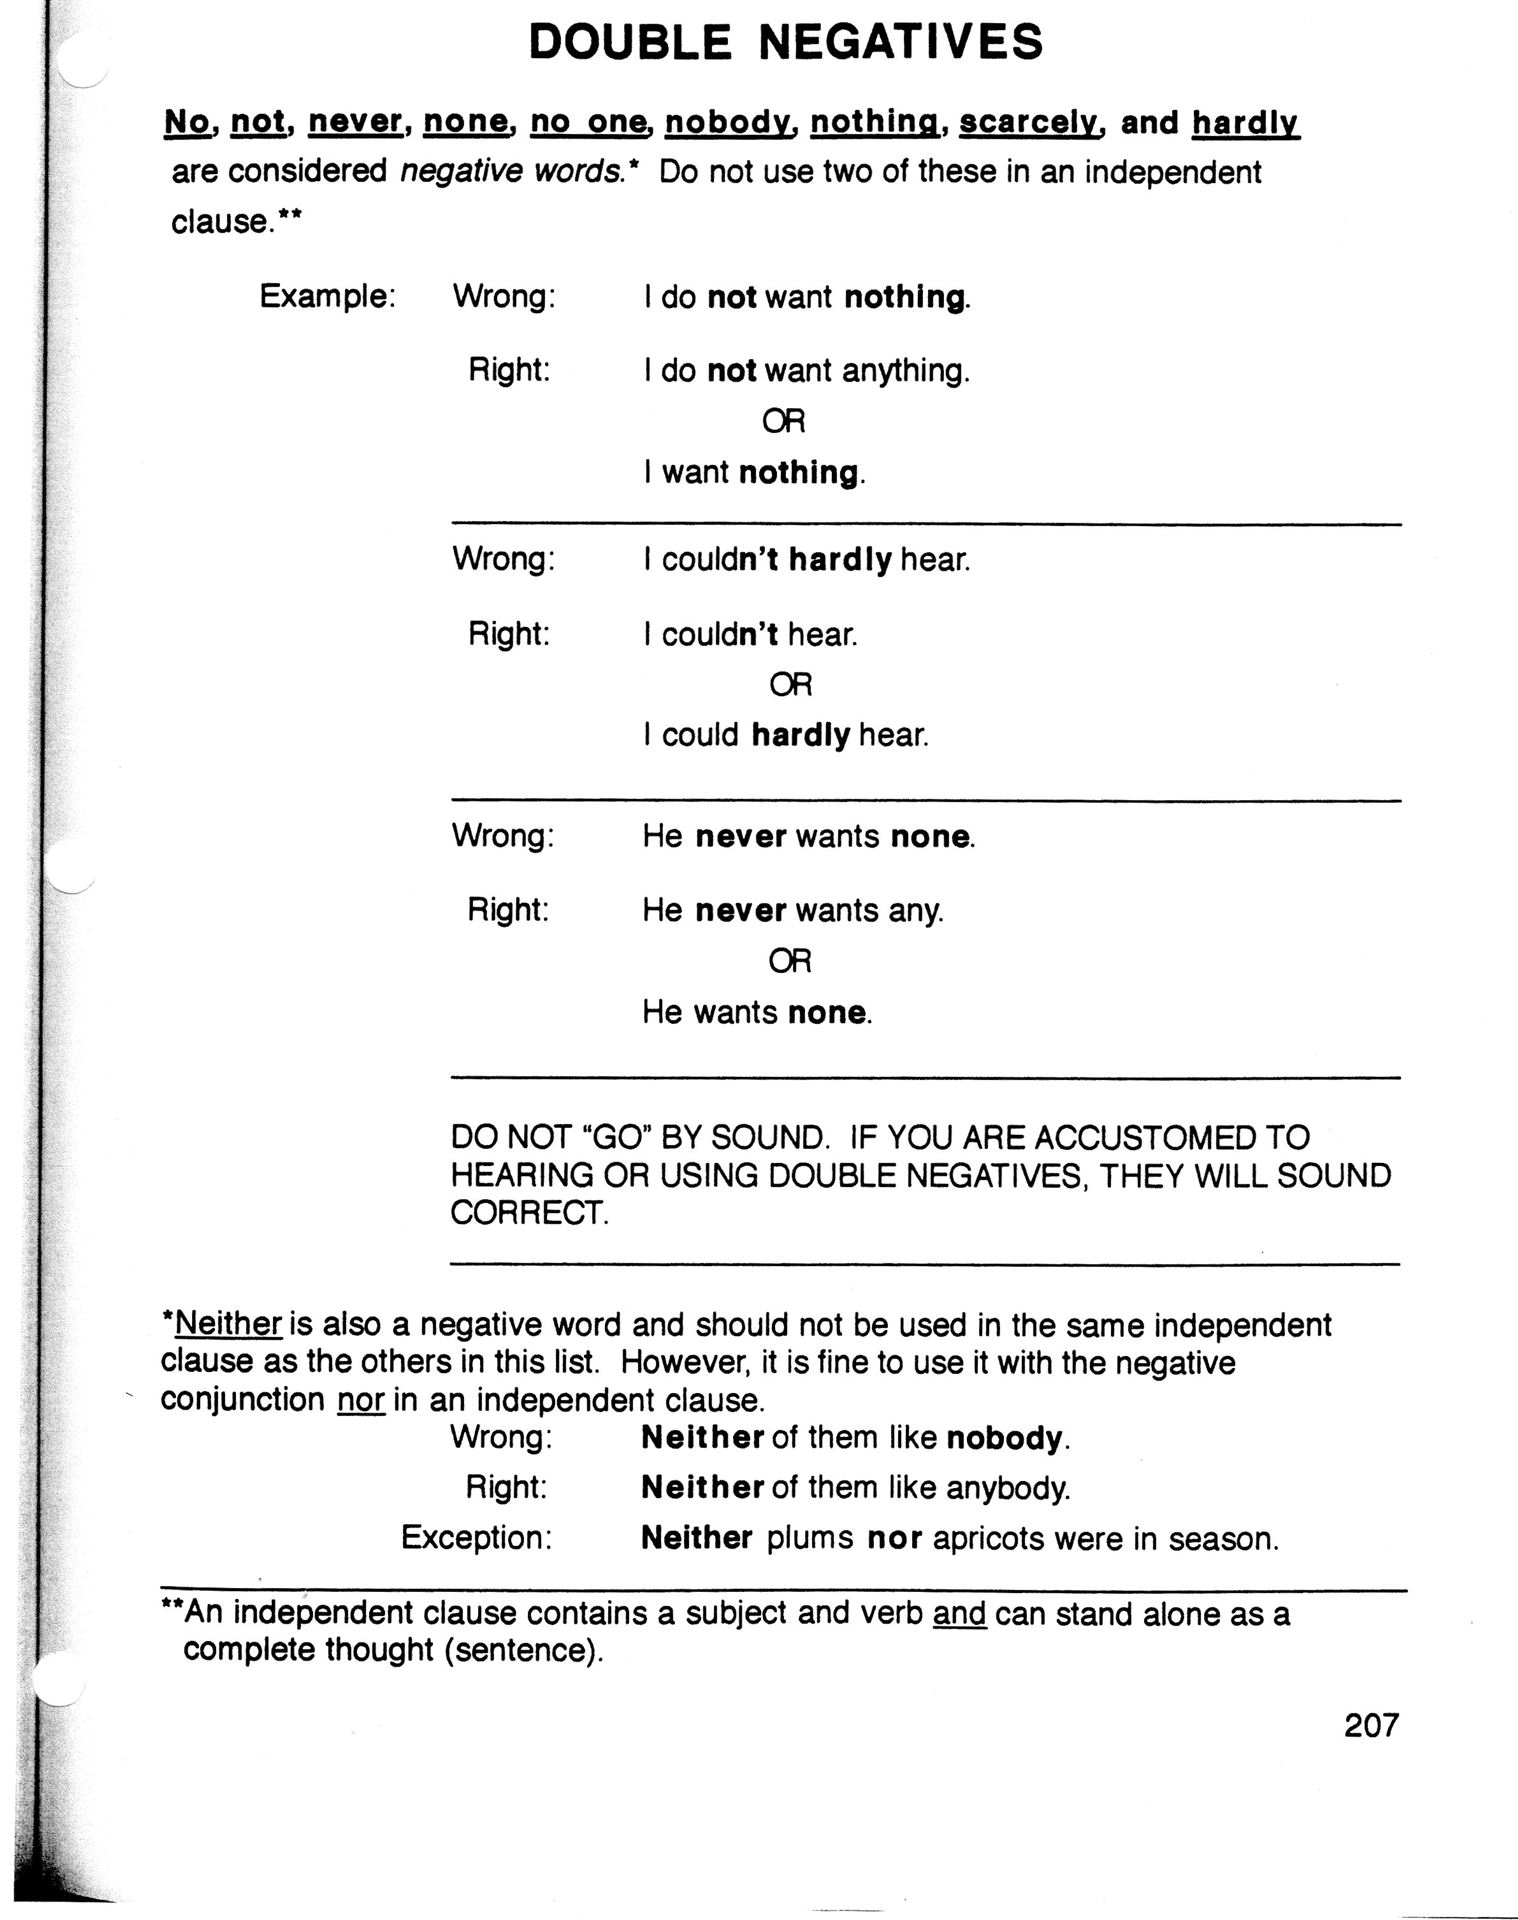 Worksheet Double Negative Worksheet Grass Fedjp Worksheet Study Site